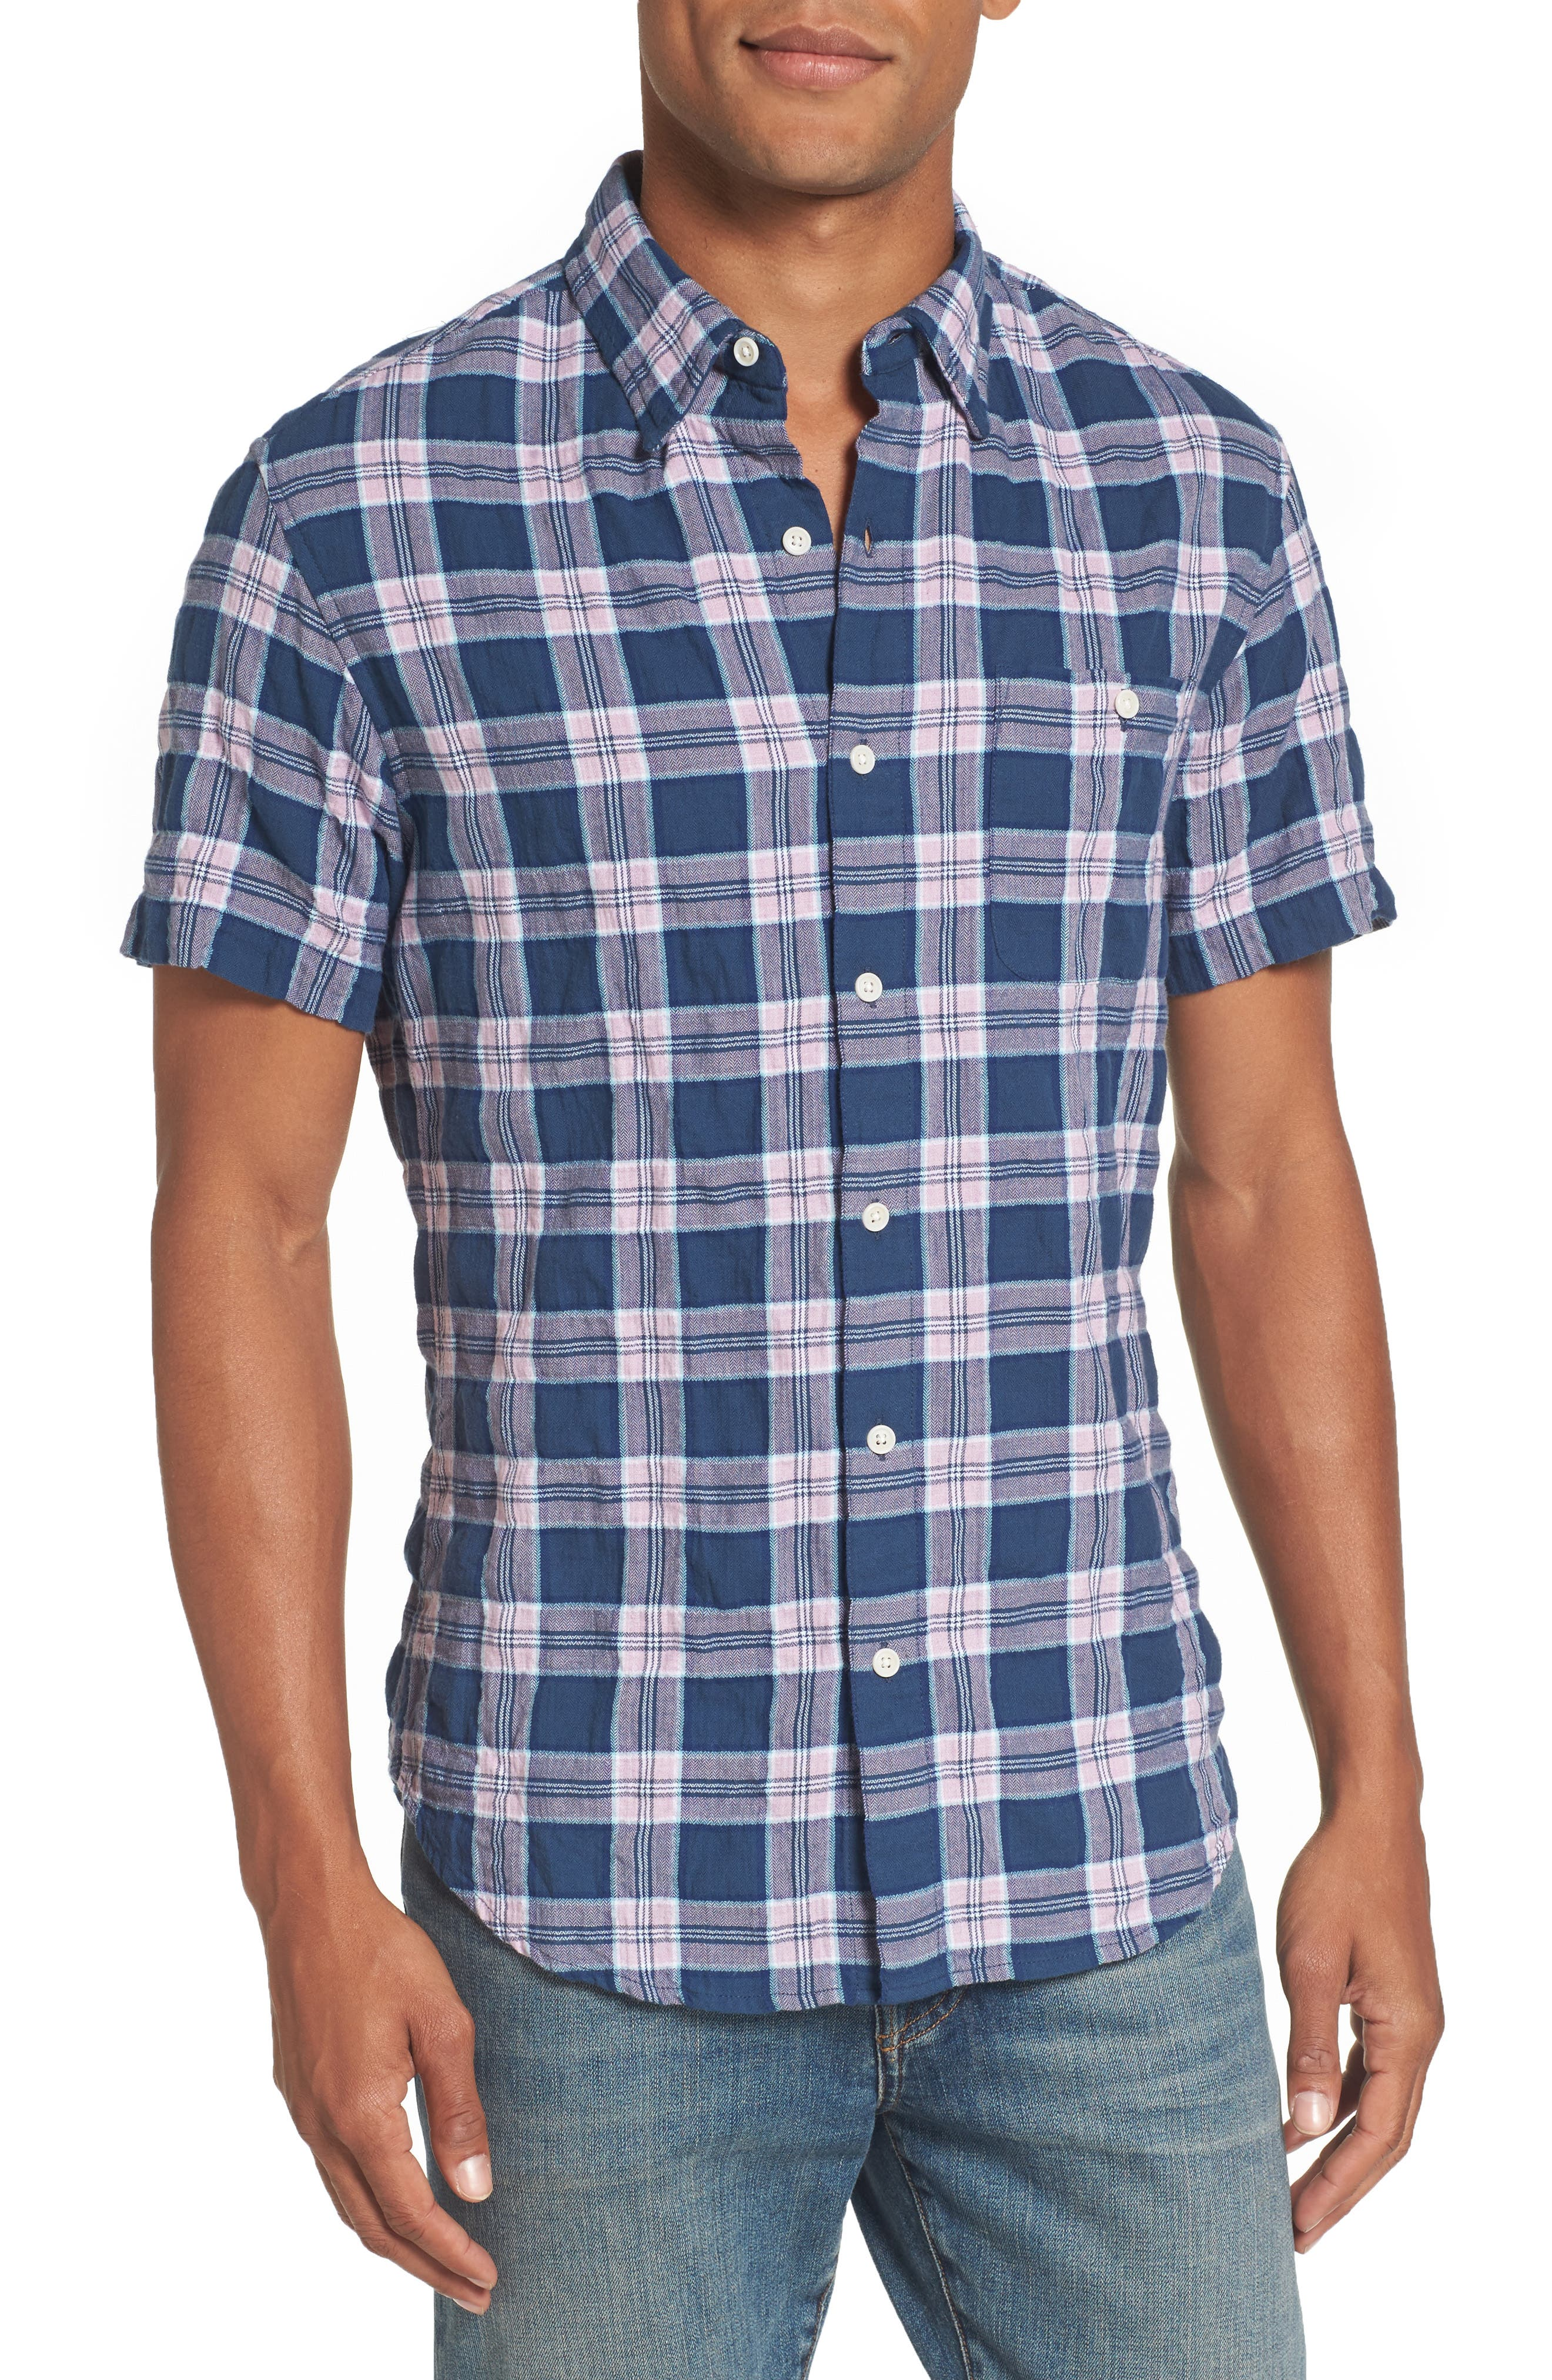 Riviera Slim Fit Plaid Woven Shirt,                             Main thumbnail 1, color,                             Crinkle Blue Pine Plaid